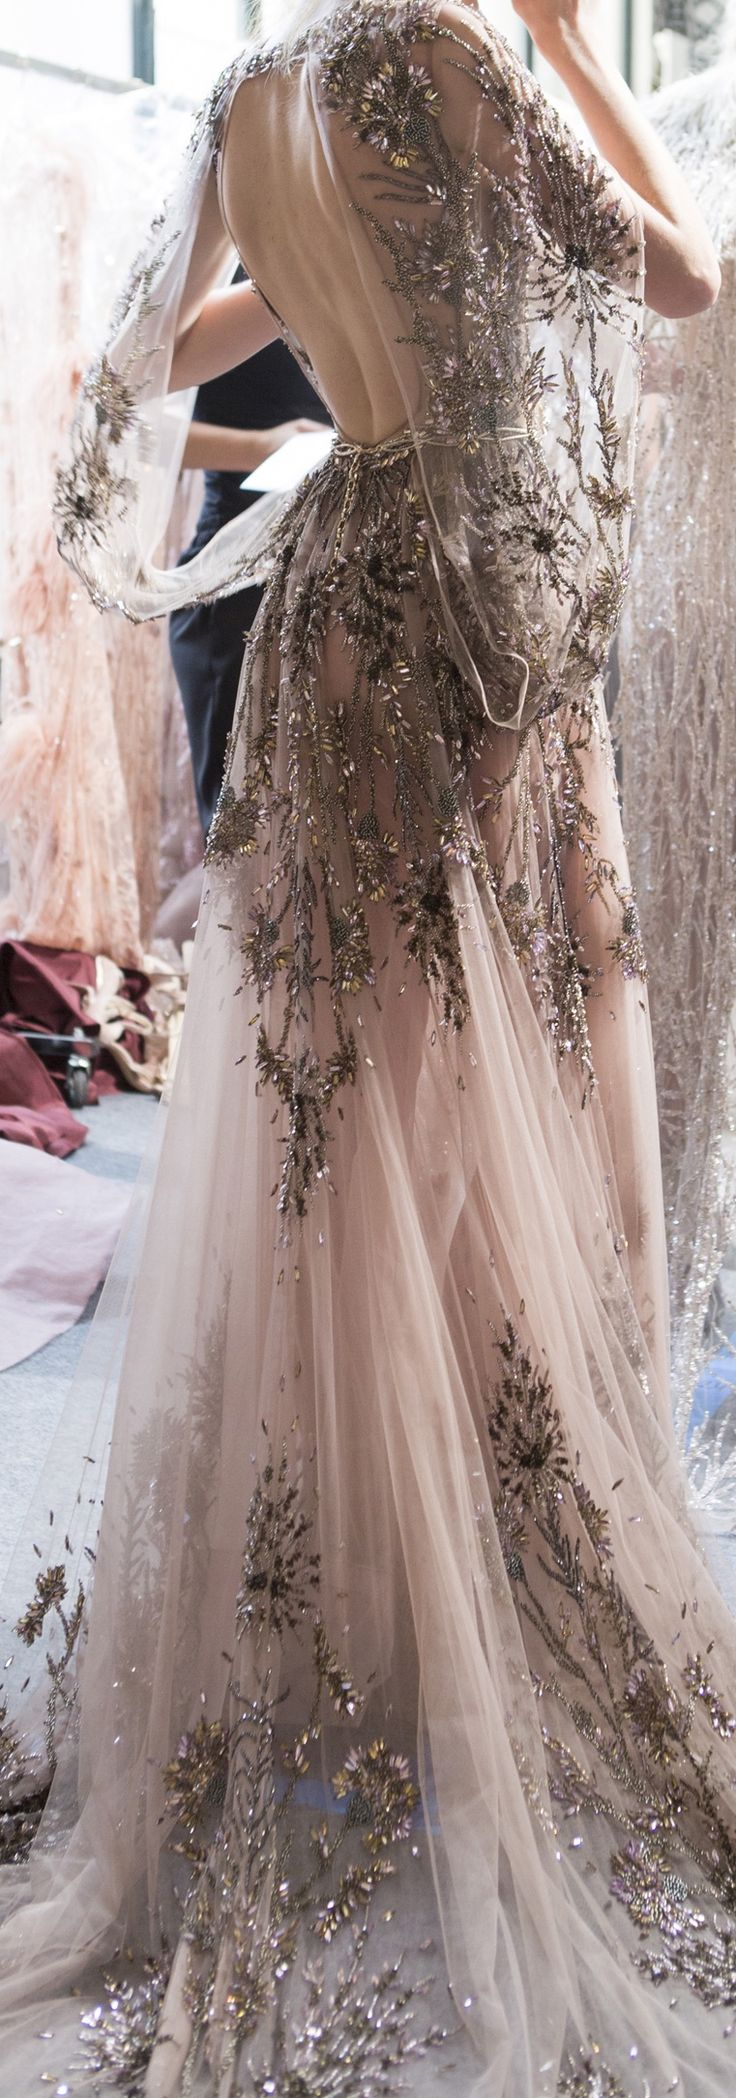 Zuhair Murad Fall 2017 Haute Couture @GorgeousFashion (Beauty Design Clothes)